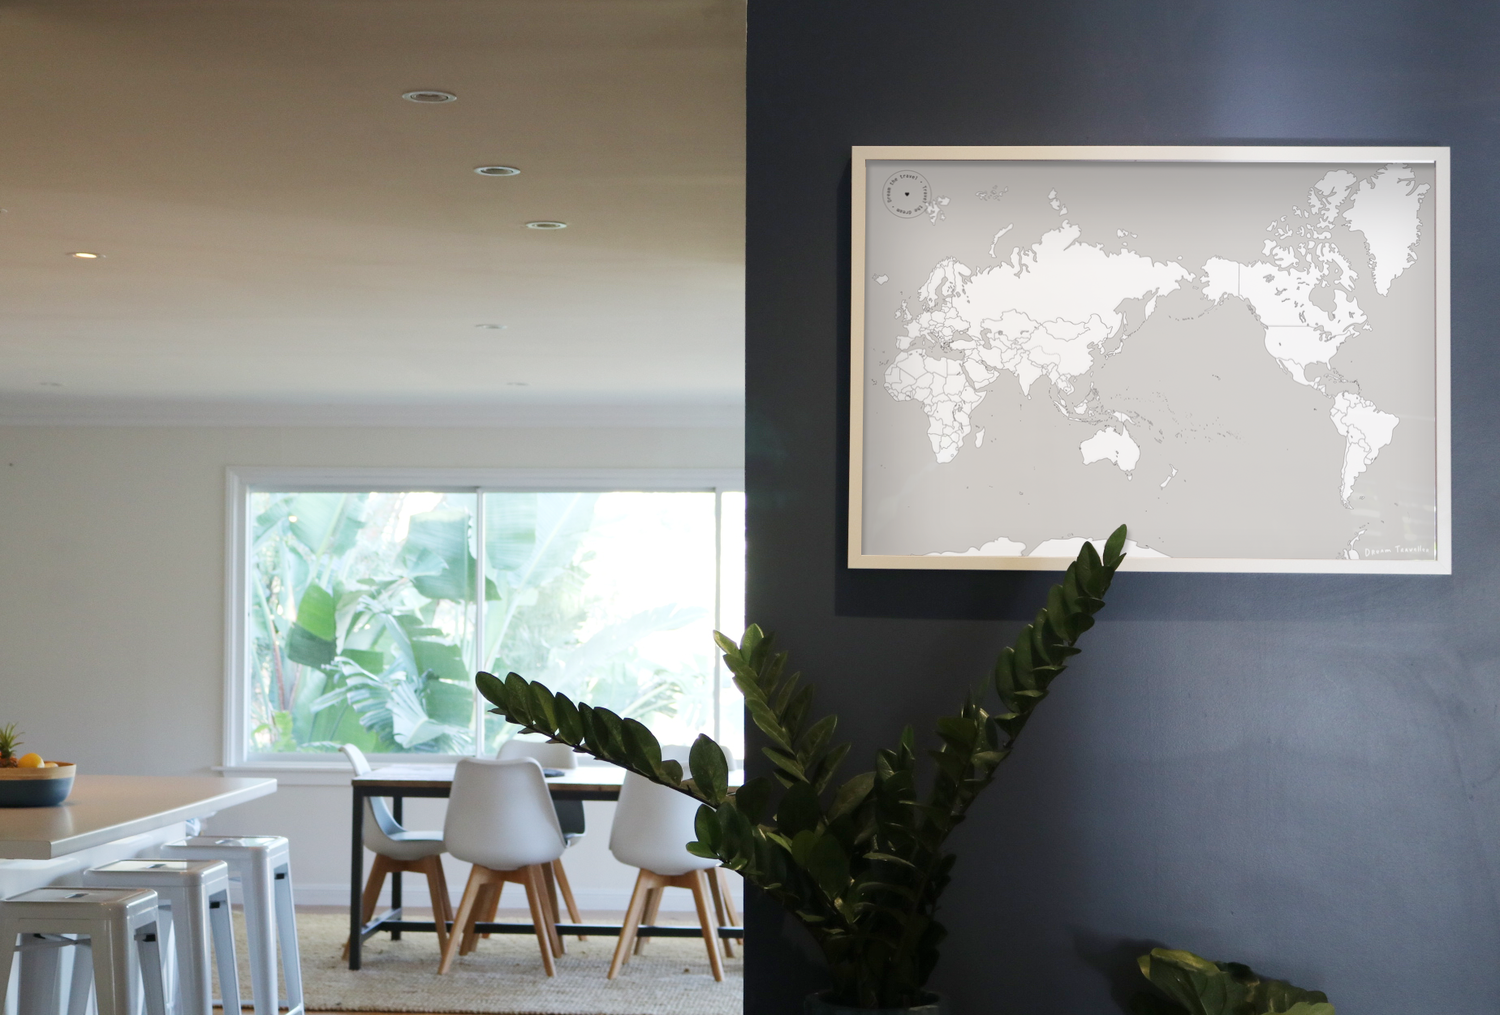 - MINIMALHave you always searched for a 'good looking' world map without all the cluttered info? Done. All you have to do is find a space on your wall and display the world to your minimalist- hearts-content. Simple is often the best.